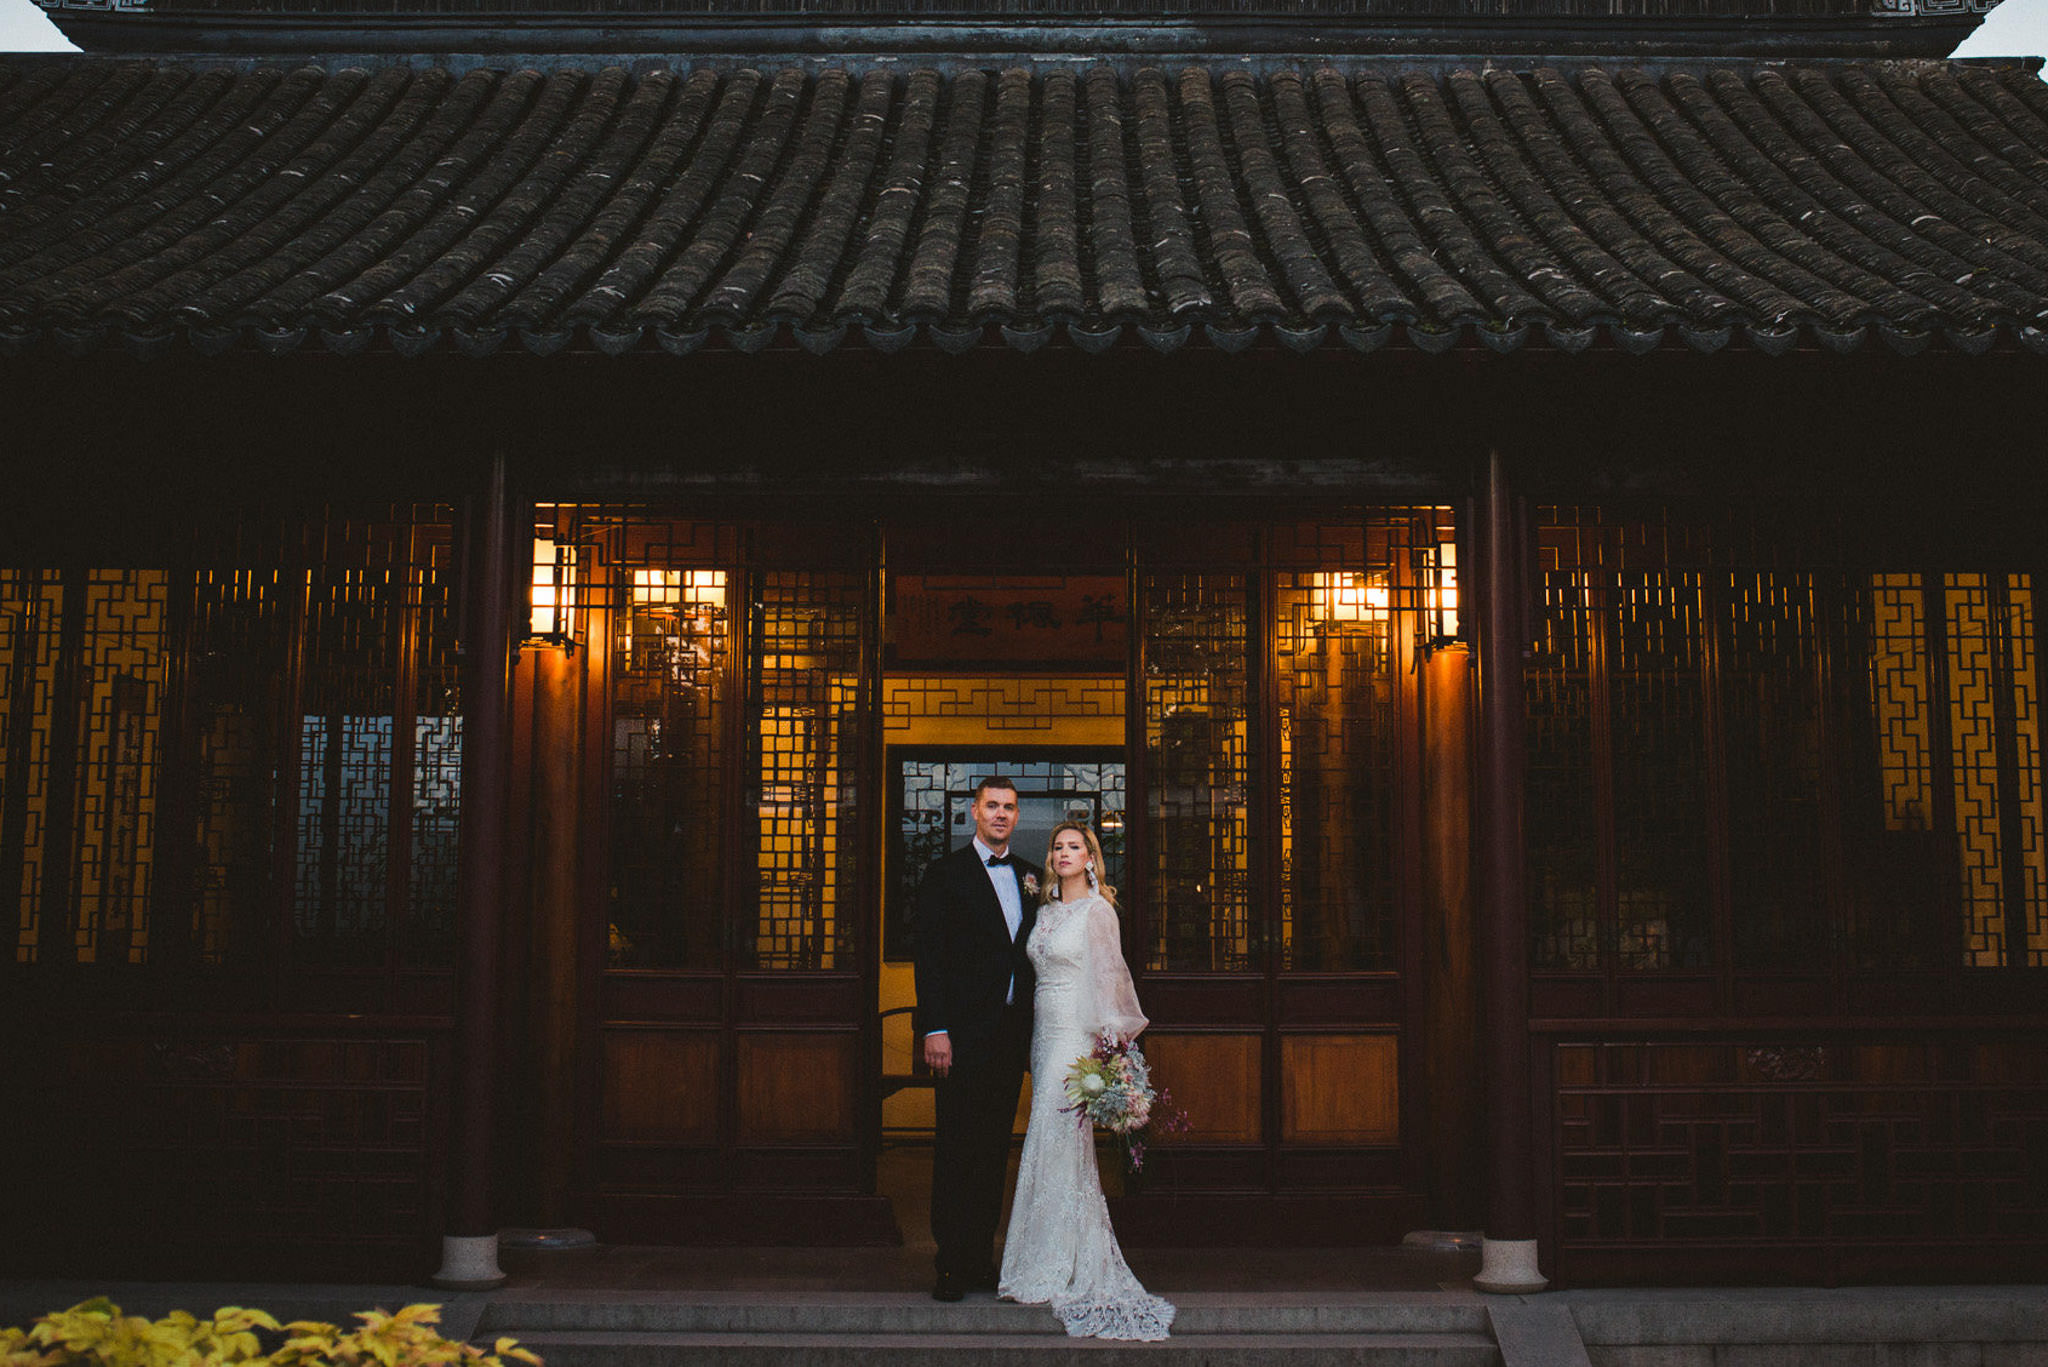 Dr. Sun Yat-Sen Classical Chinese Garden wedding, Sun Yat-Sen garden wedding, chinese garden wedding, Vancouver, wedding photographer, wedding photography, stylish wedding, elegant wedding, non traditional wedding, DIY wedding dress, Wilfred, Aritzia, architectural wedding photos, sunset, dusk